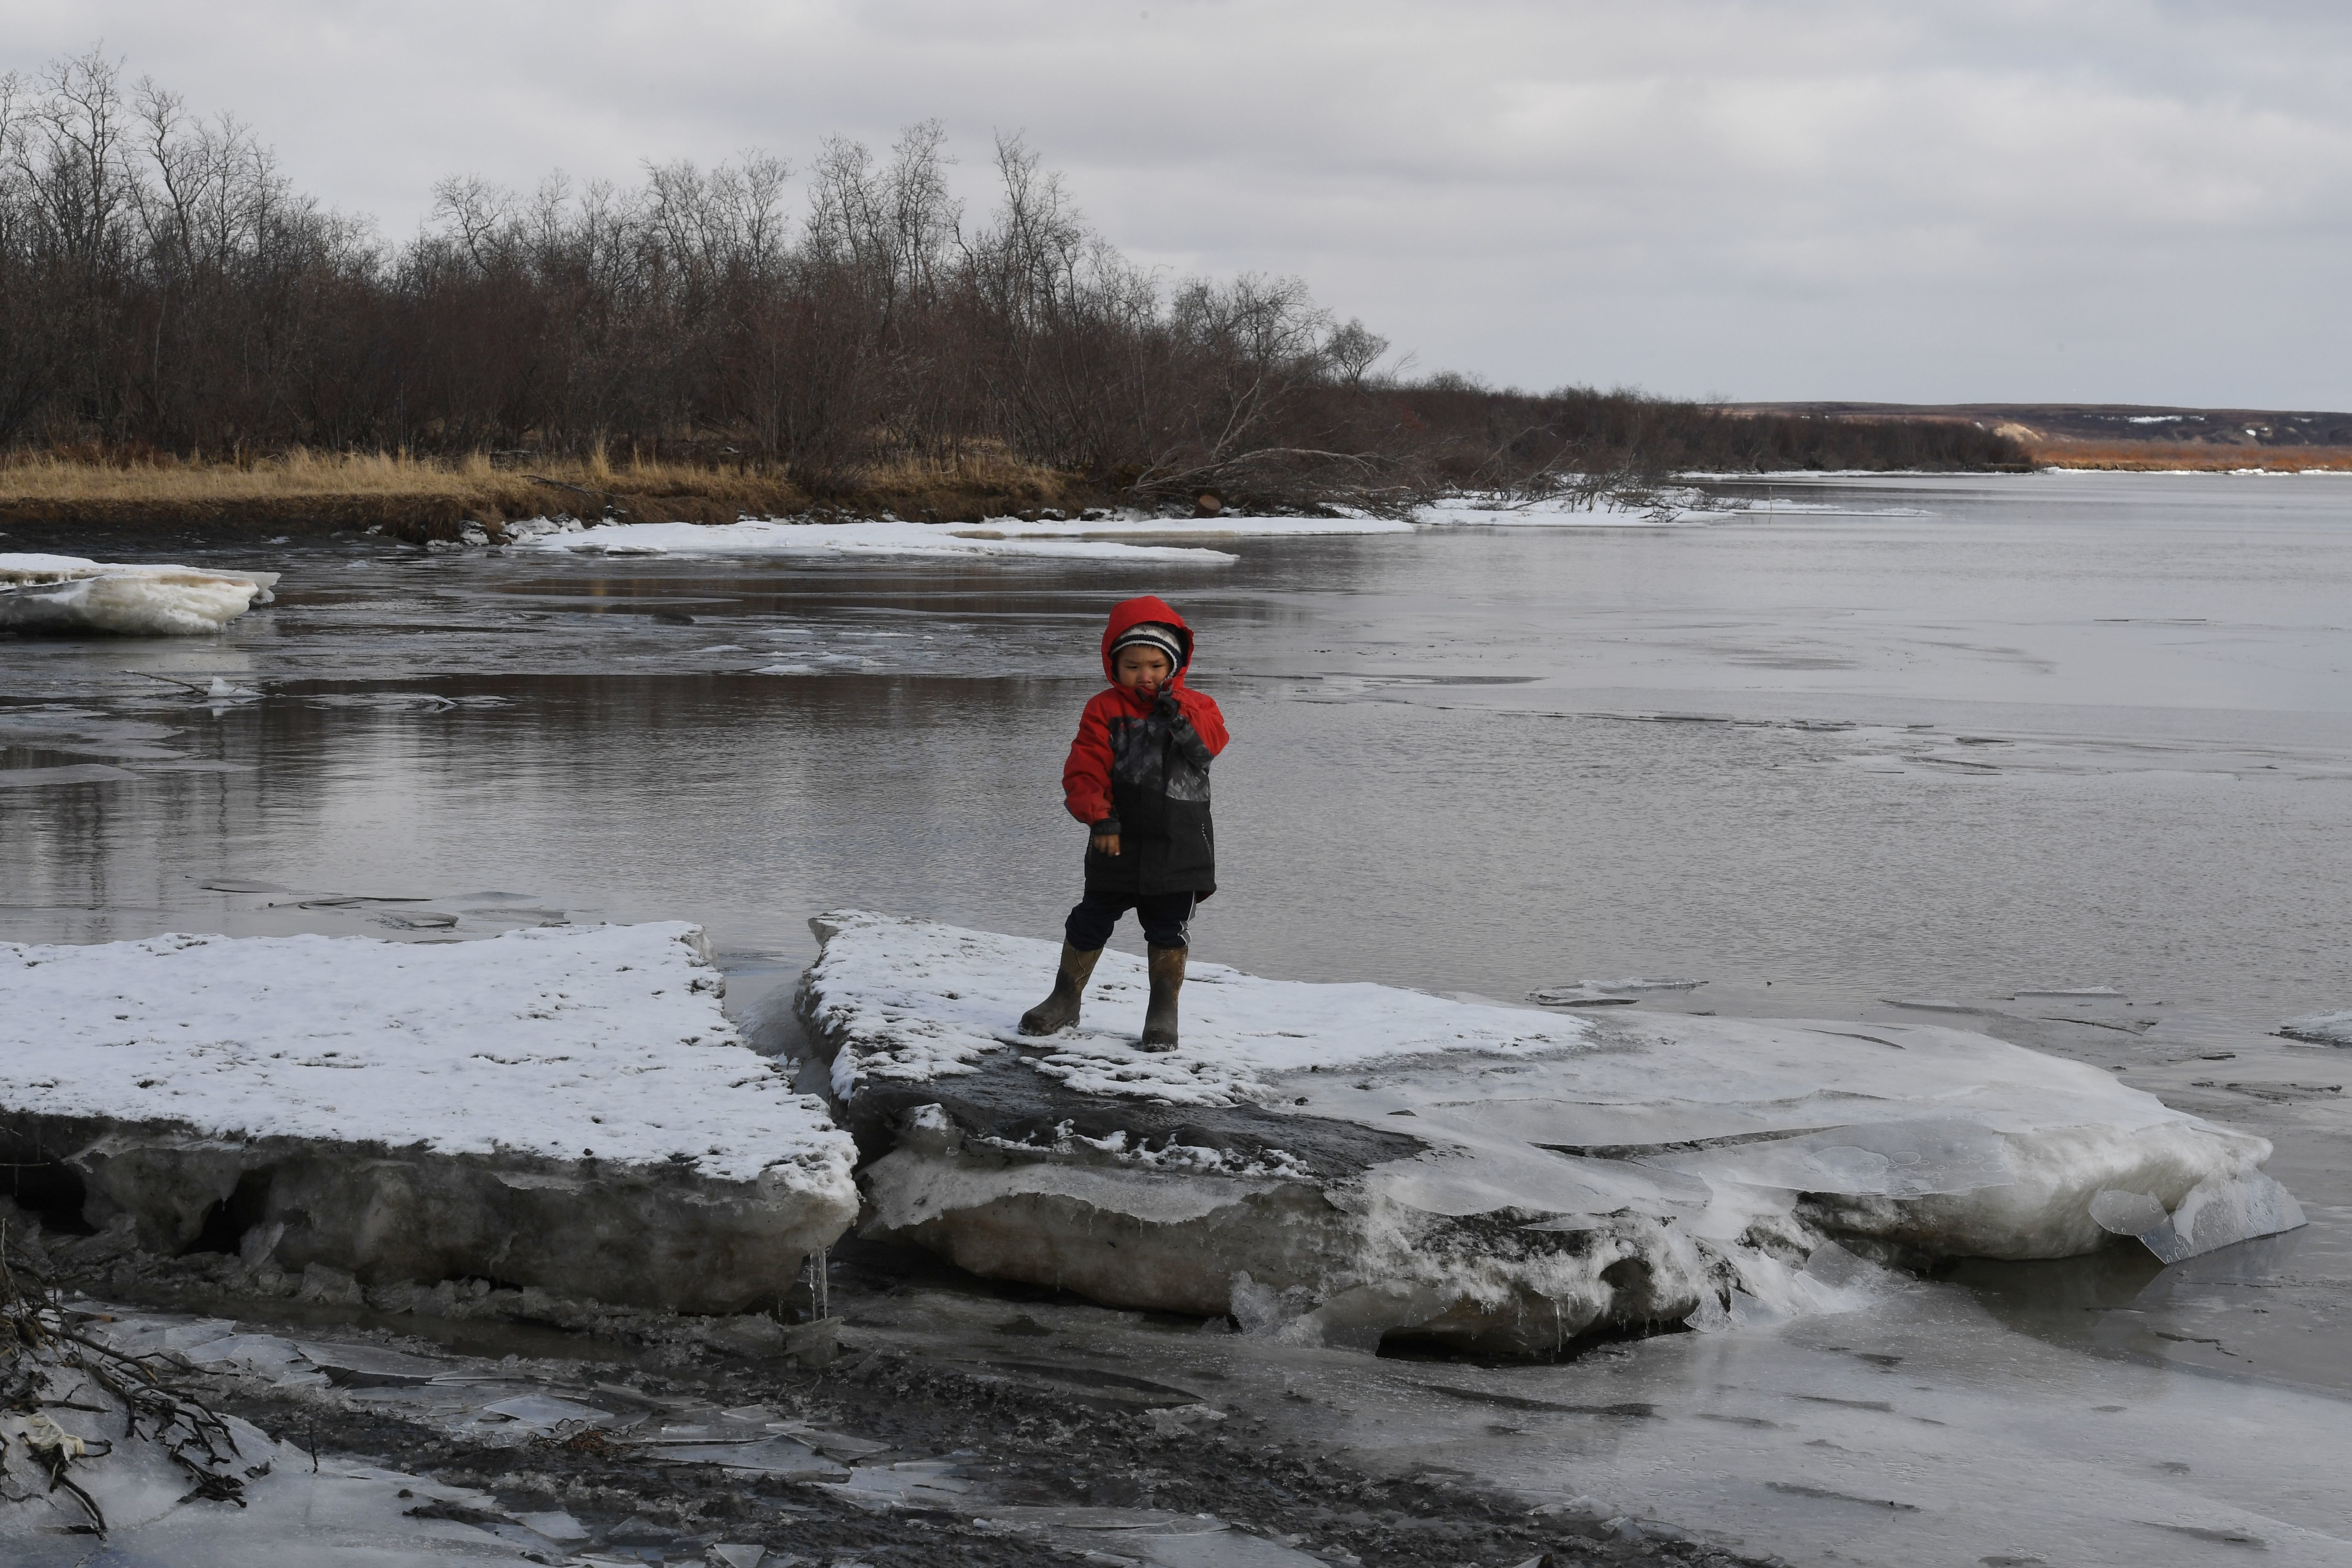 Permafrost is melting 70 years earlier than expected in Arctic Canada